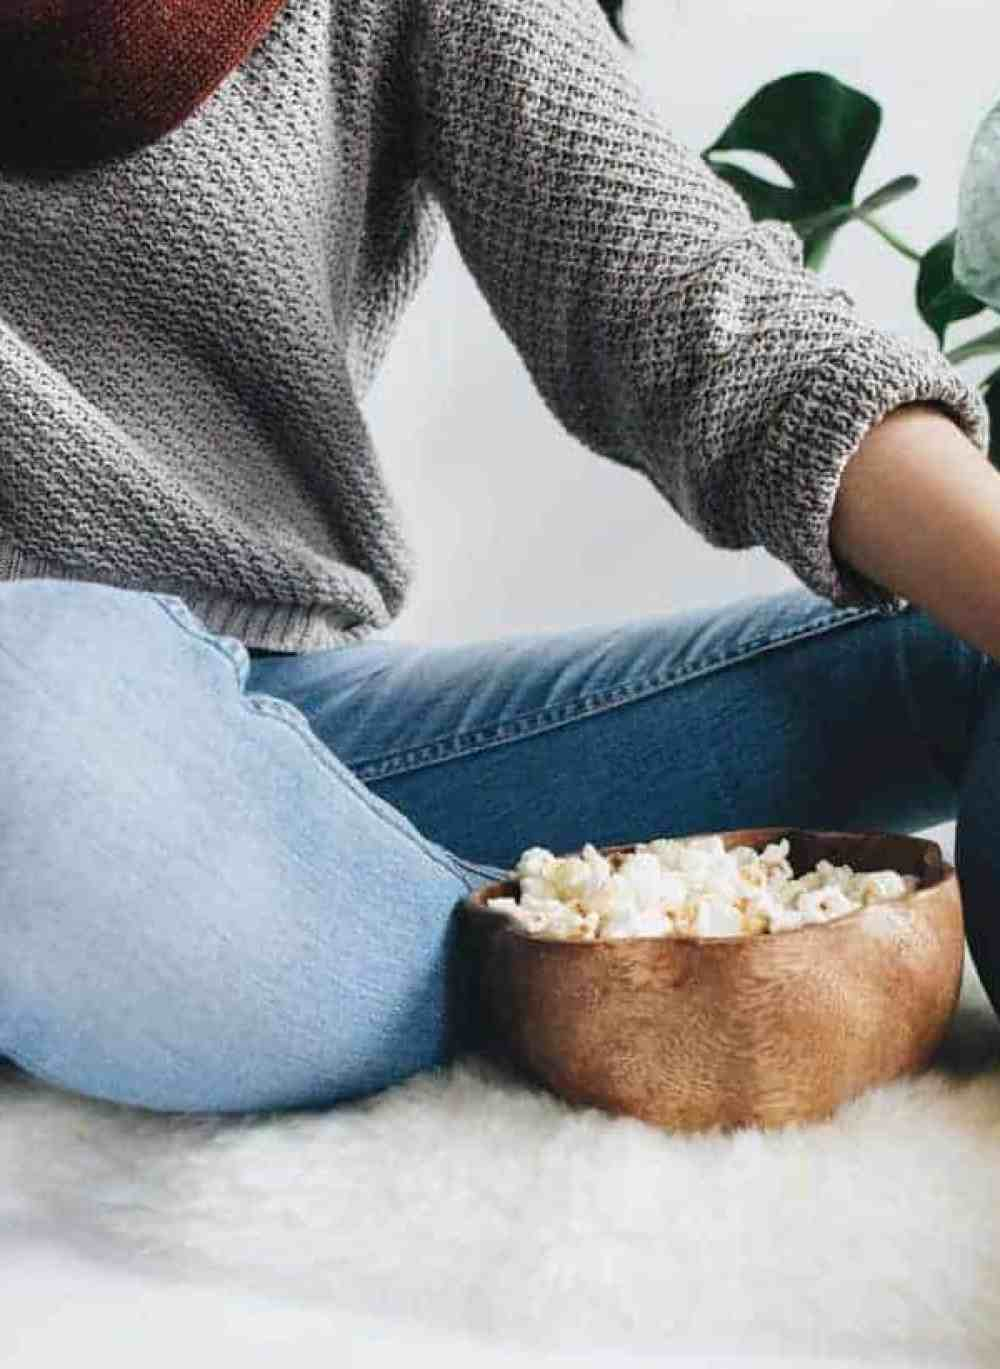 Eating popcorn - is it allowed on a low carb or ketogenic diet